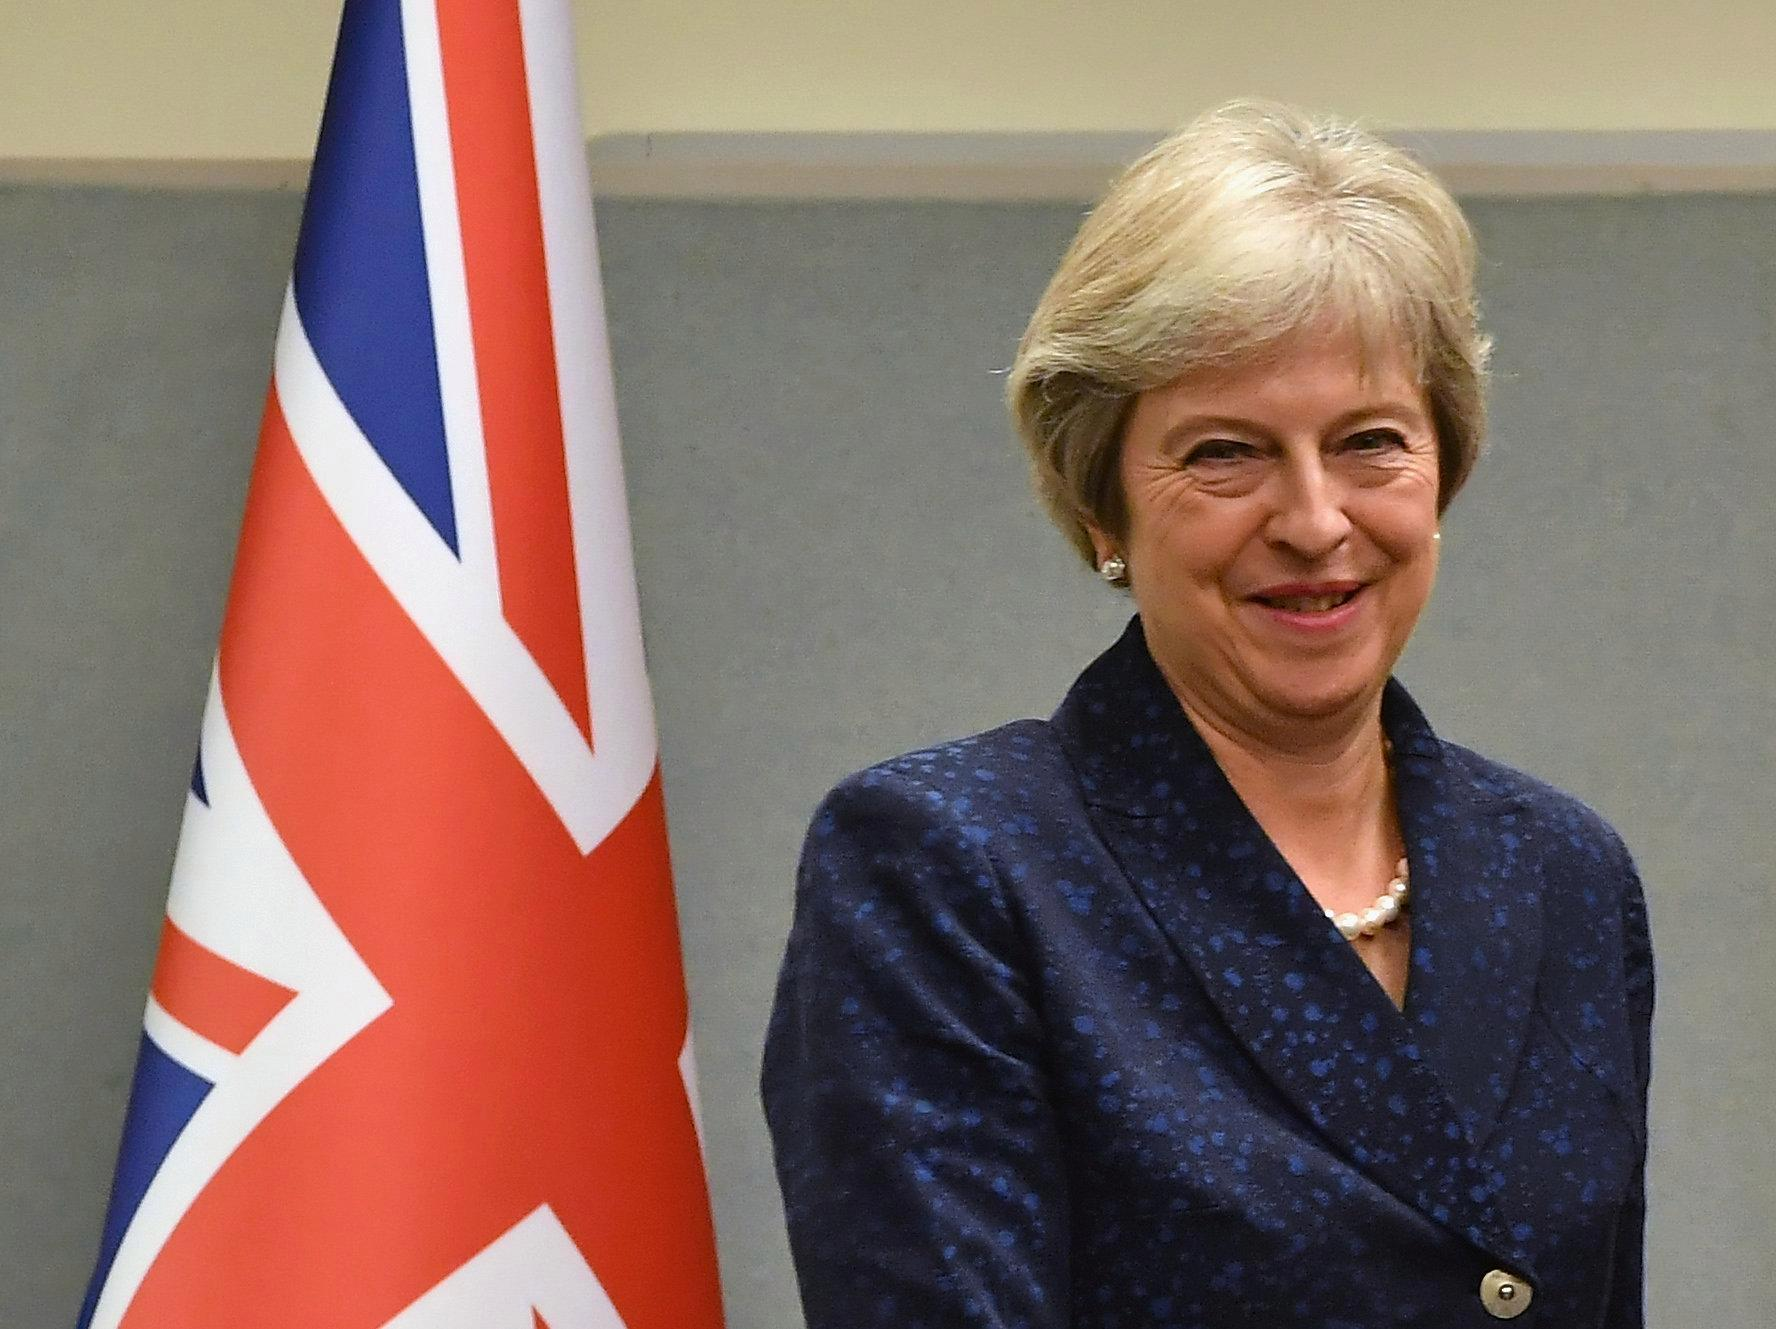 How old is Theresa May, what has she said about Brexit and how much does the Prime Minister get paid?